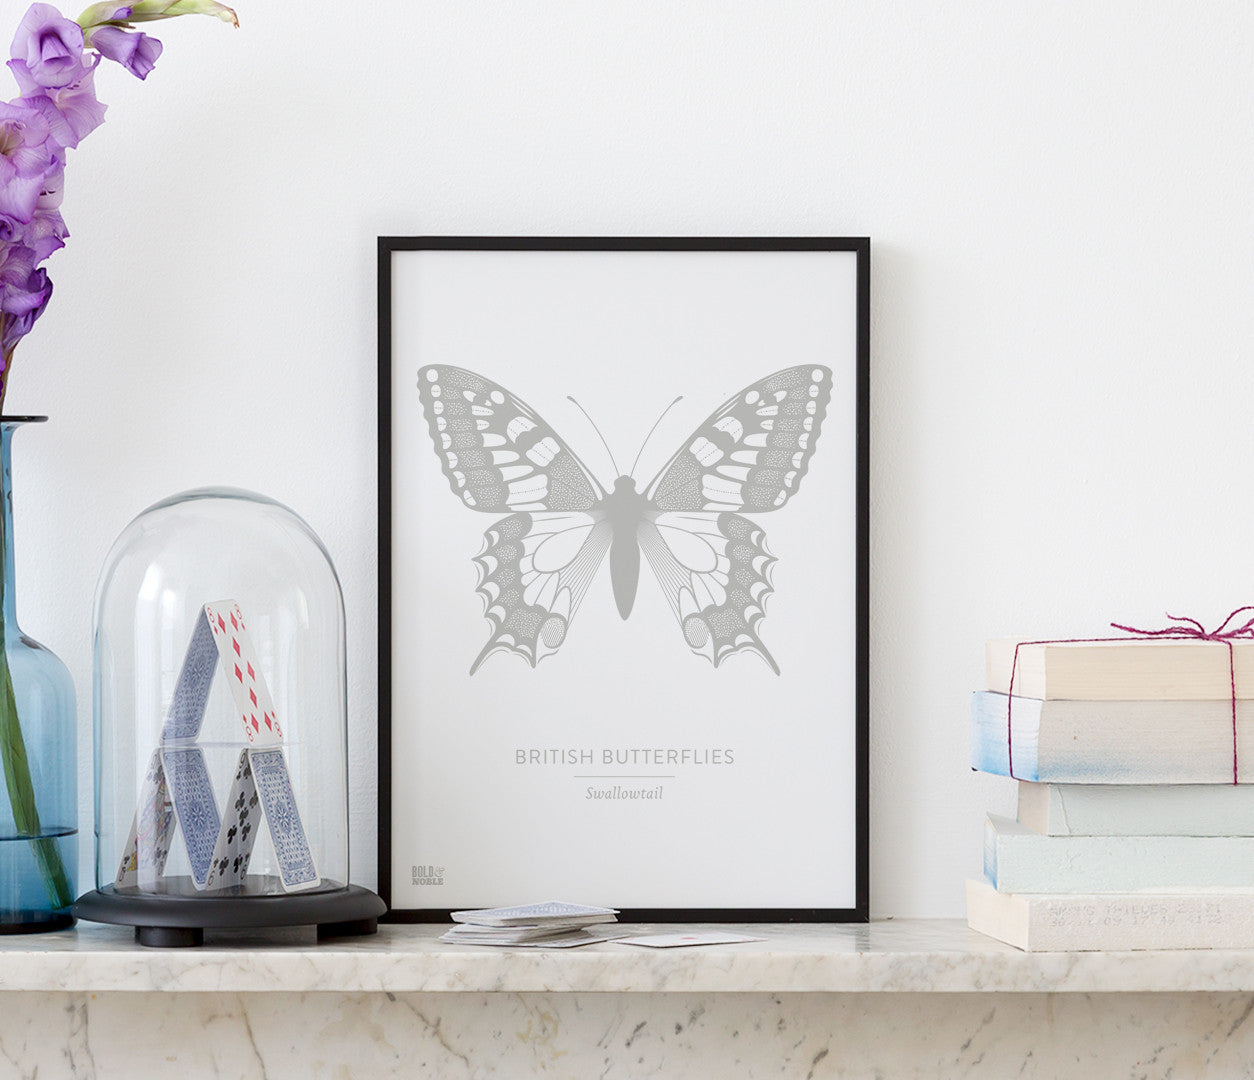 British Butterflies Wall Art Print in Grey, Lovely Print Designs for the Home